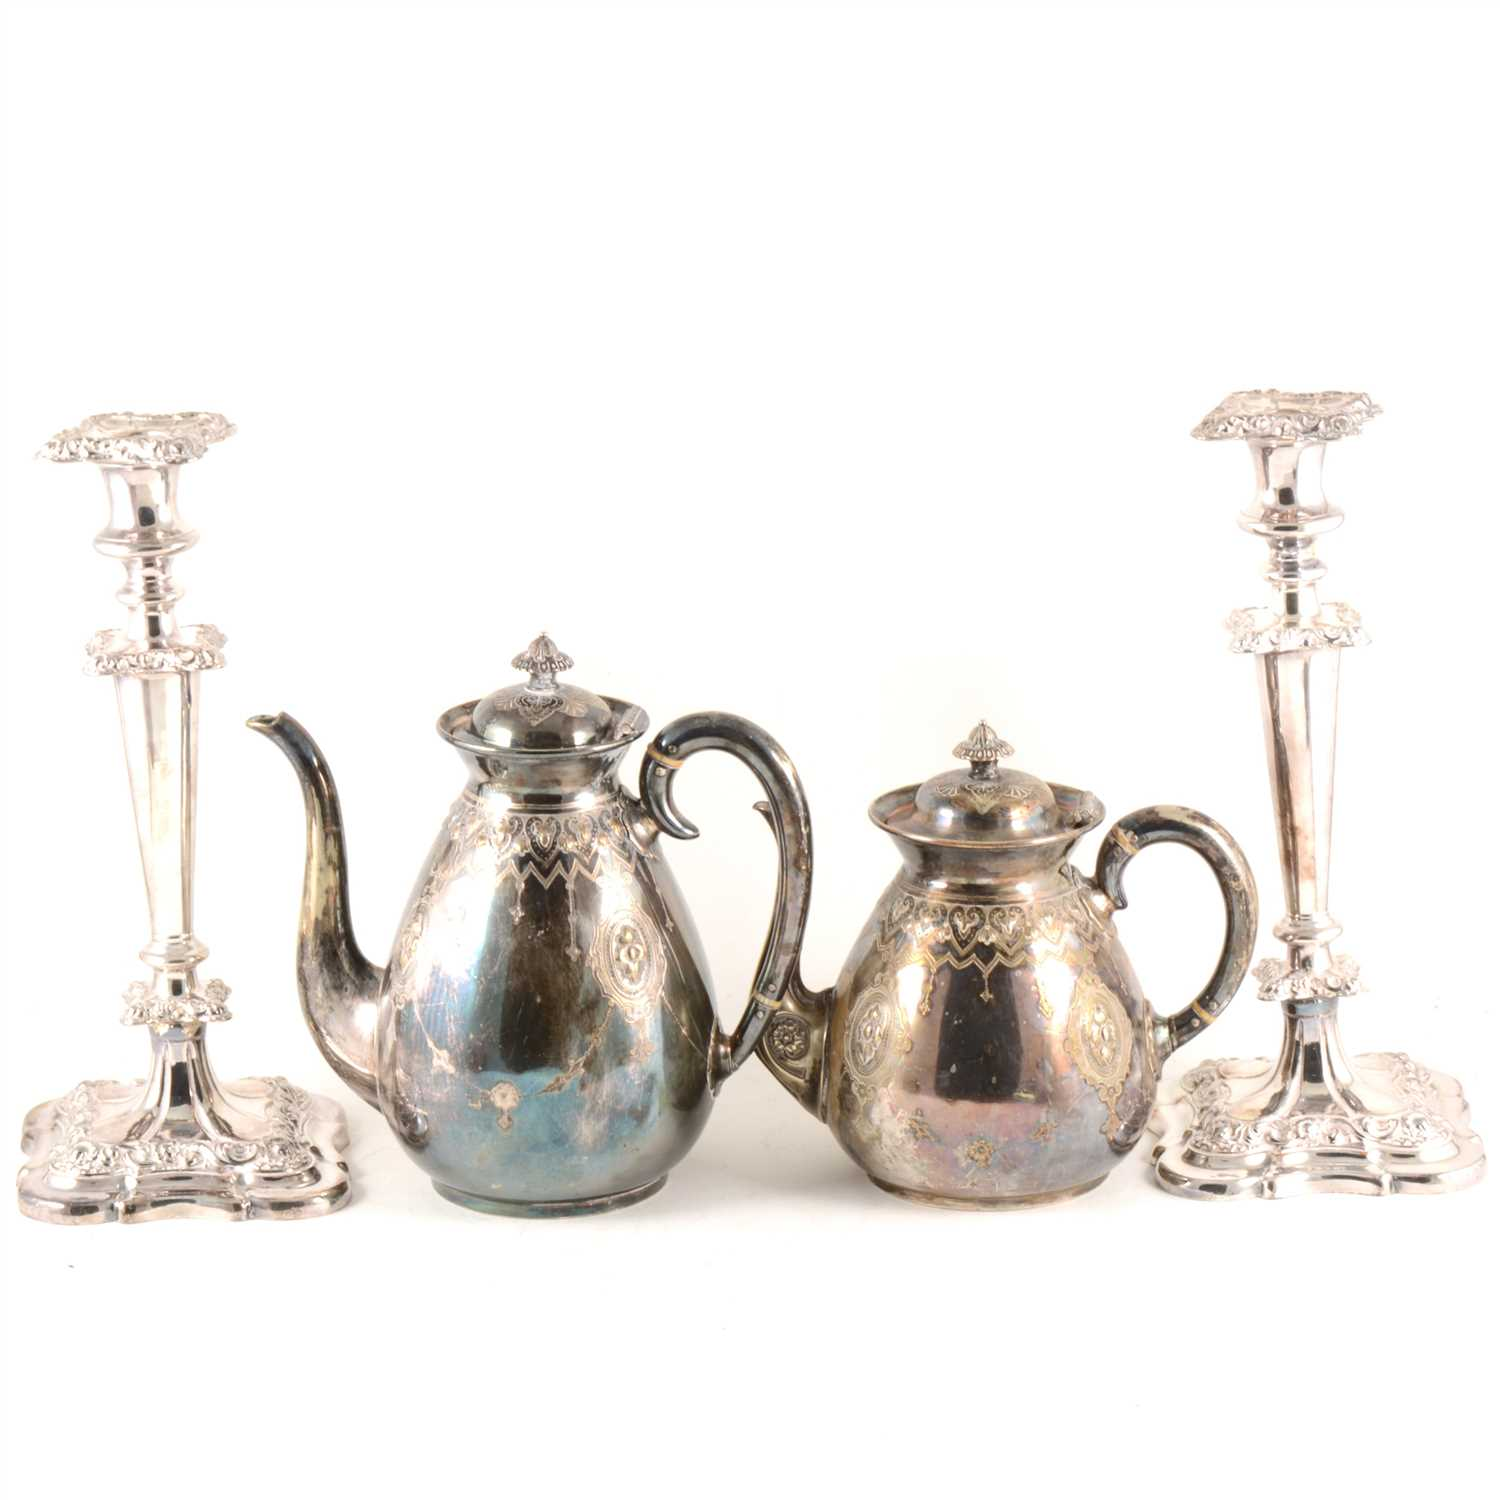 Lot 42-A pair of 31cm silver-plated candlesticks, coffee pot and teapot, cased set of fish servers with mother-of pearl handles.